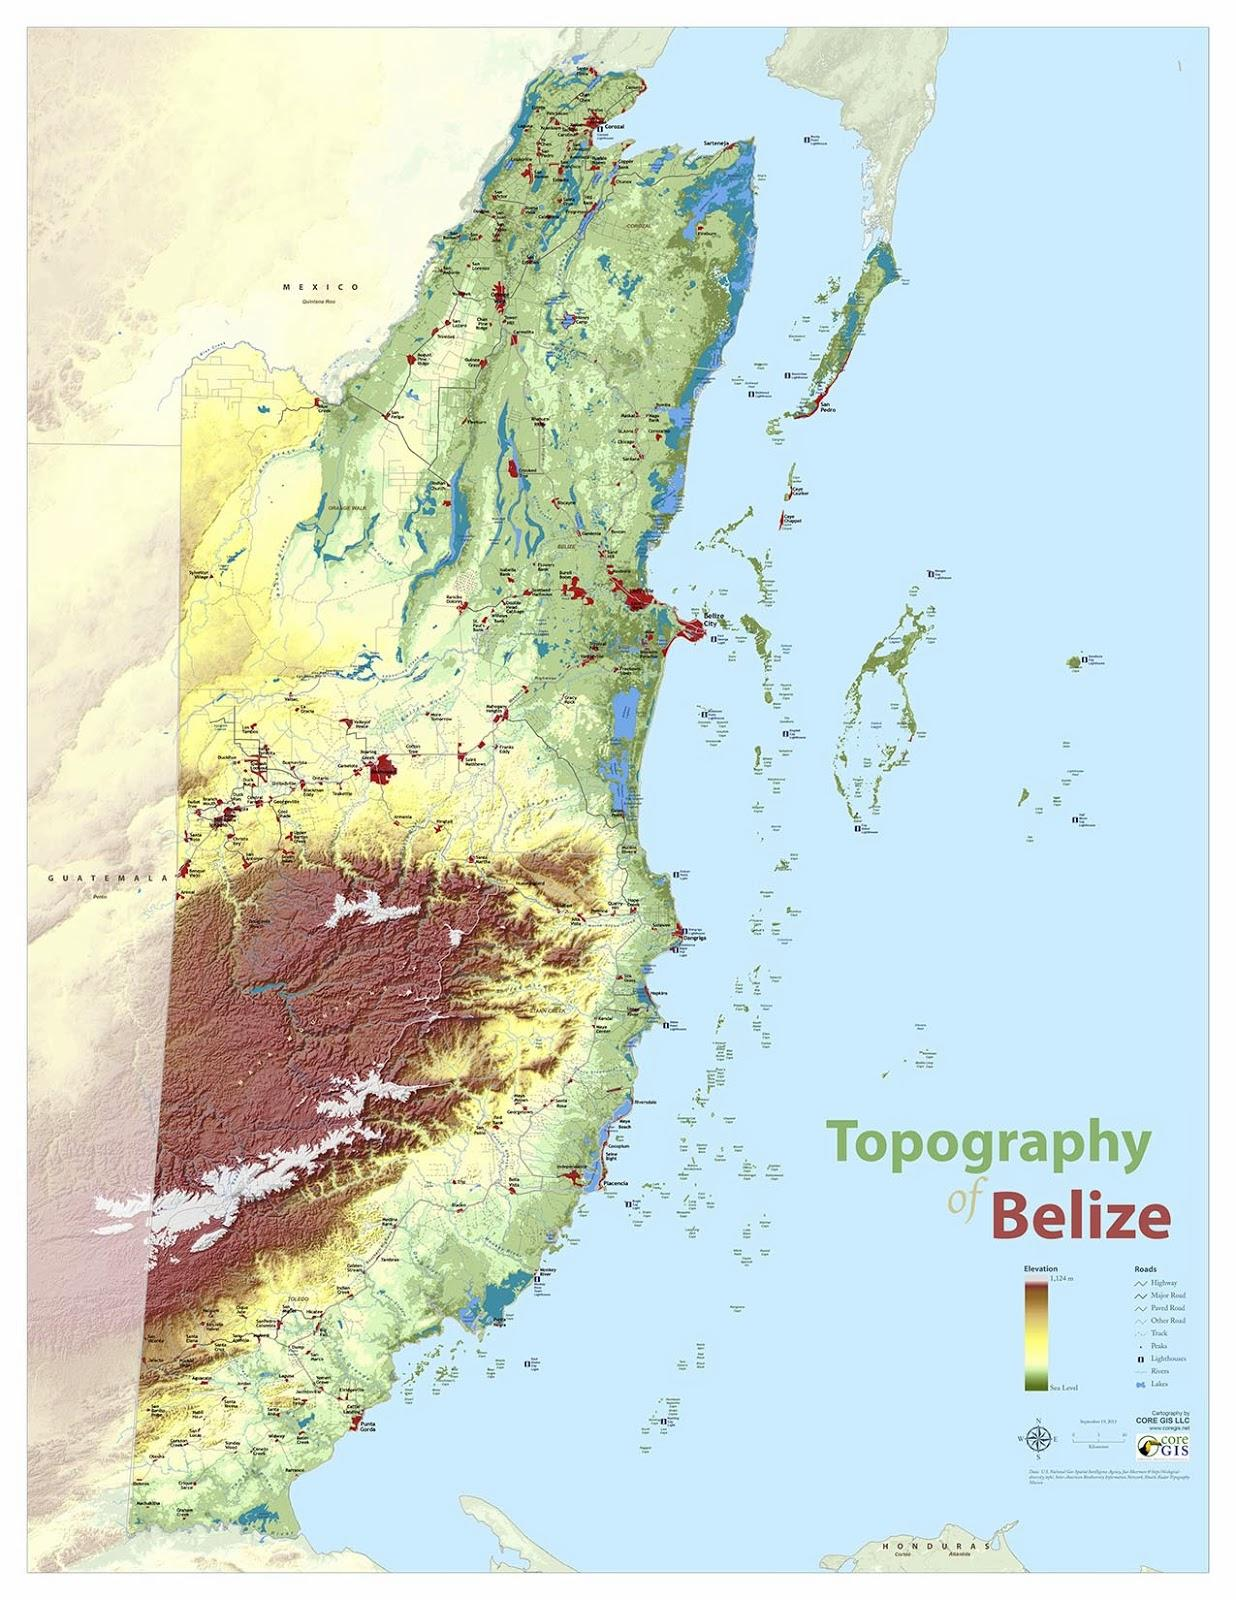 Honduras Topographic Map.Topographic Map Of Belize Map Of Topographic Belize Central